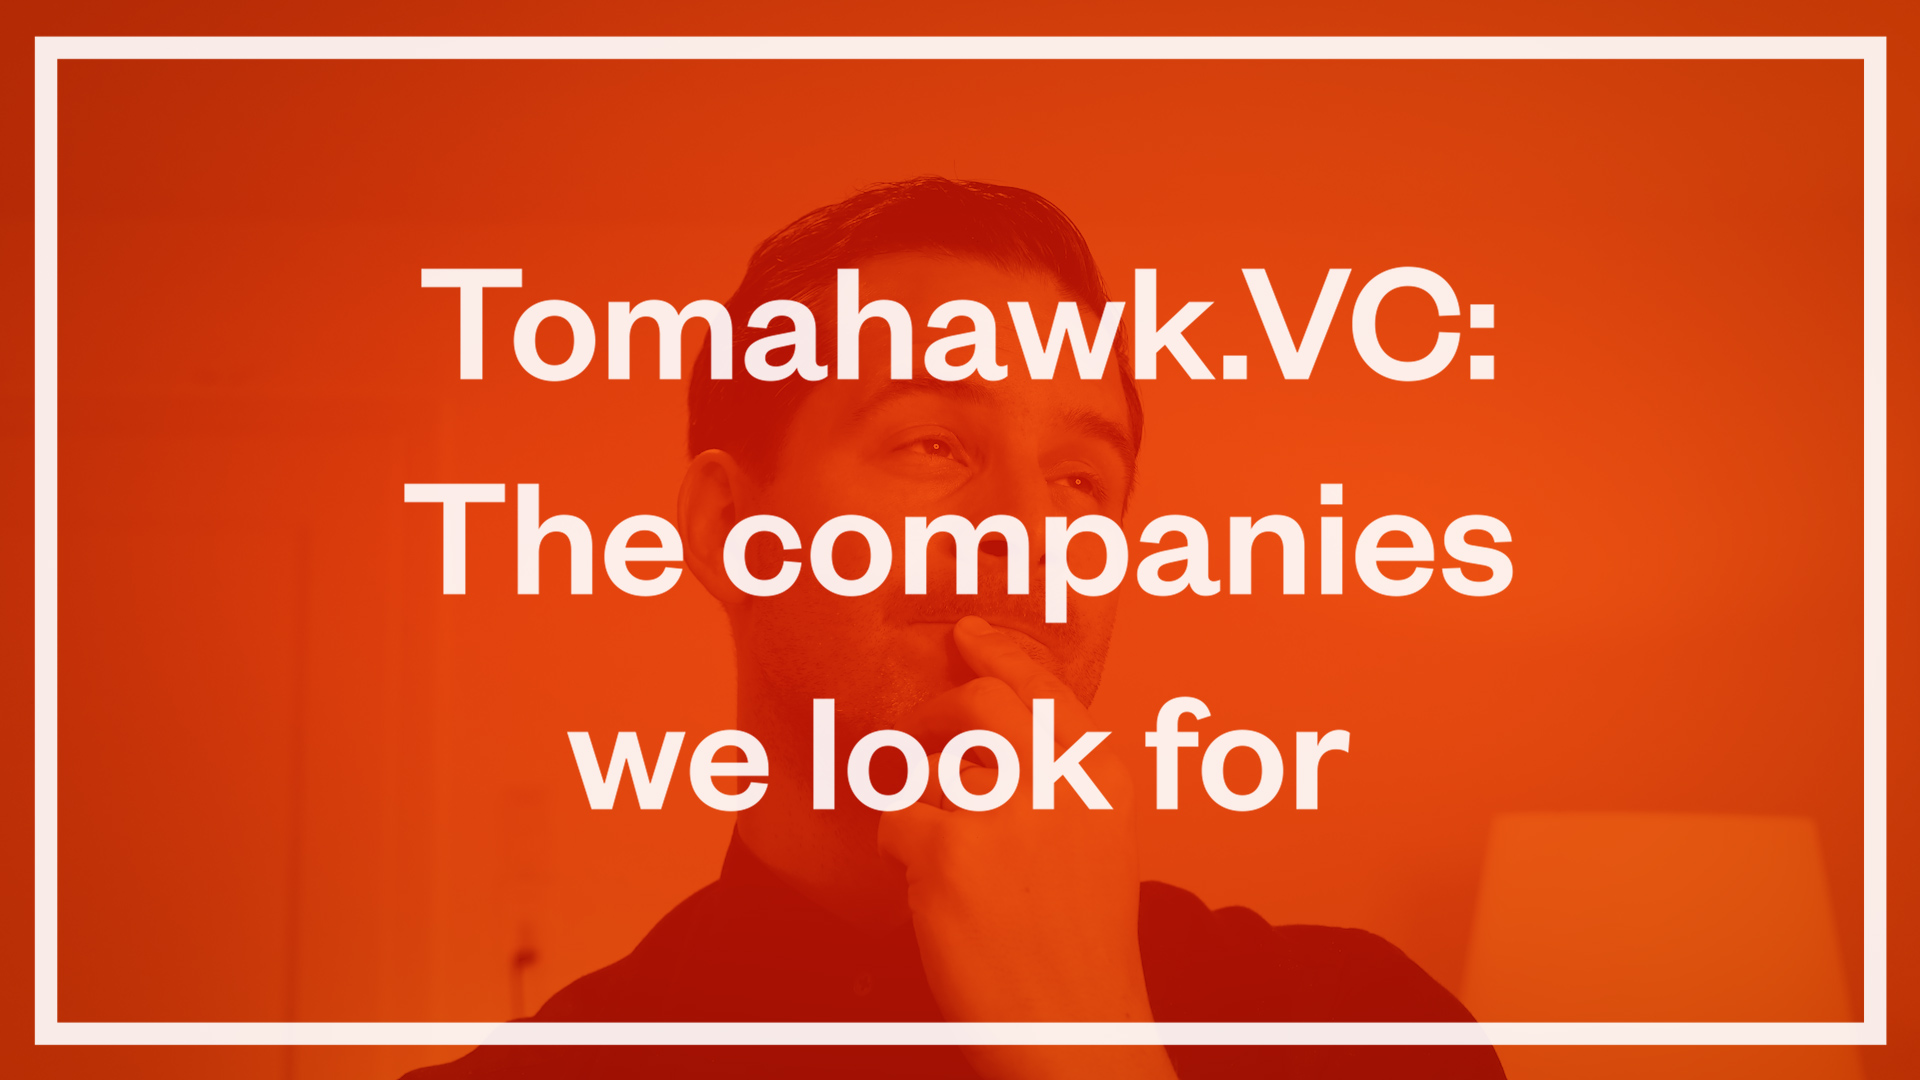 Tomahawk.VC: The companies we look for